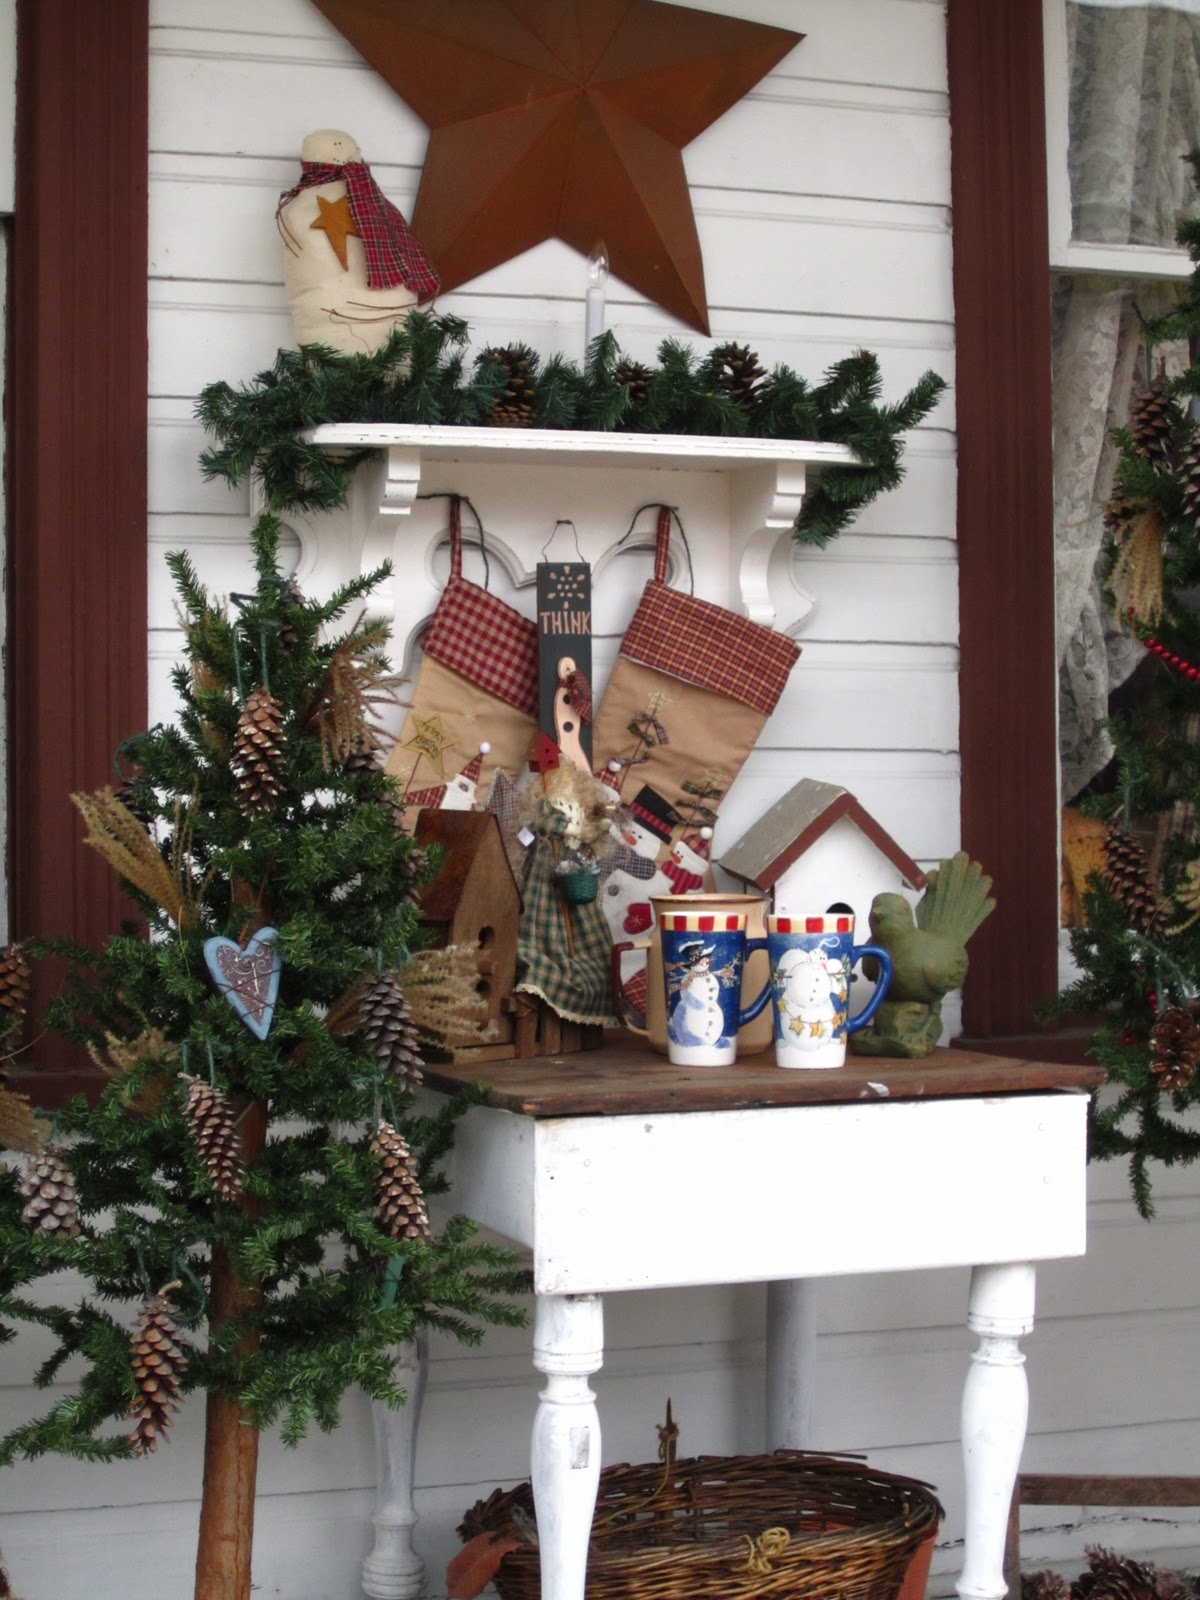 Country Christmas Decorations For Front Porch : Suesjunktreasures rustic country christmas on my front